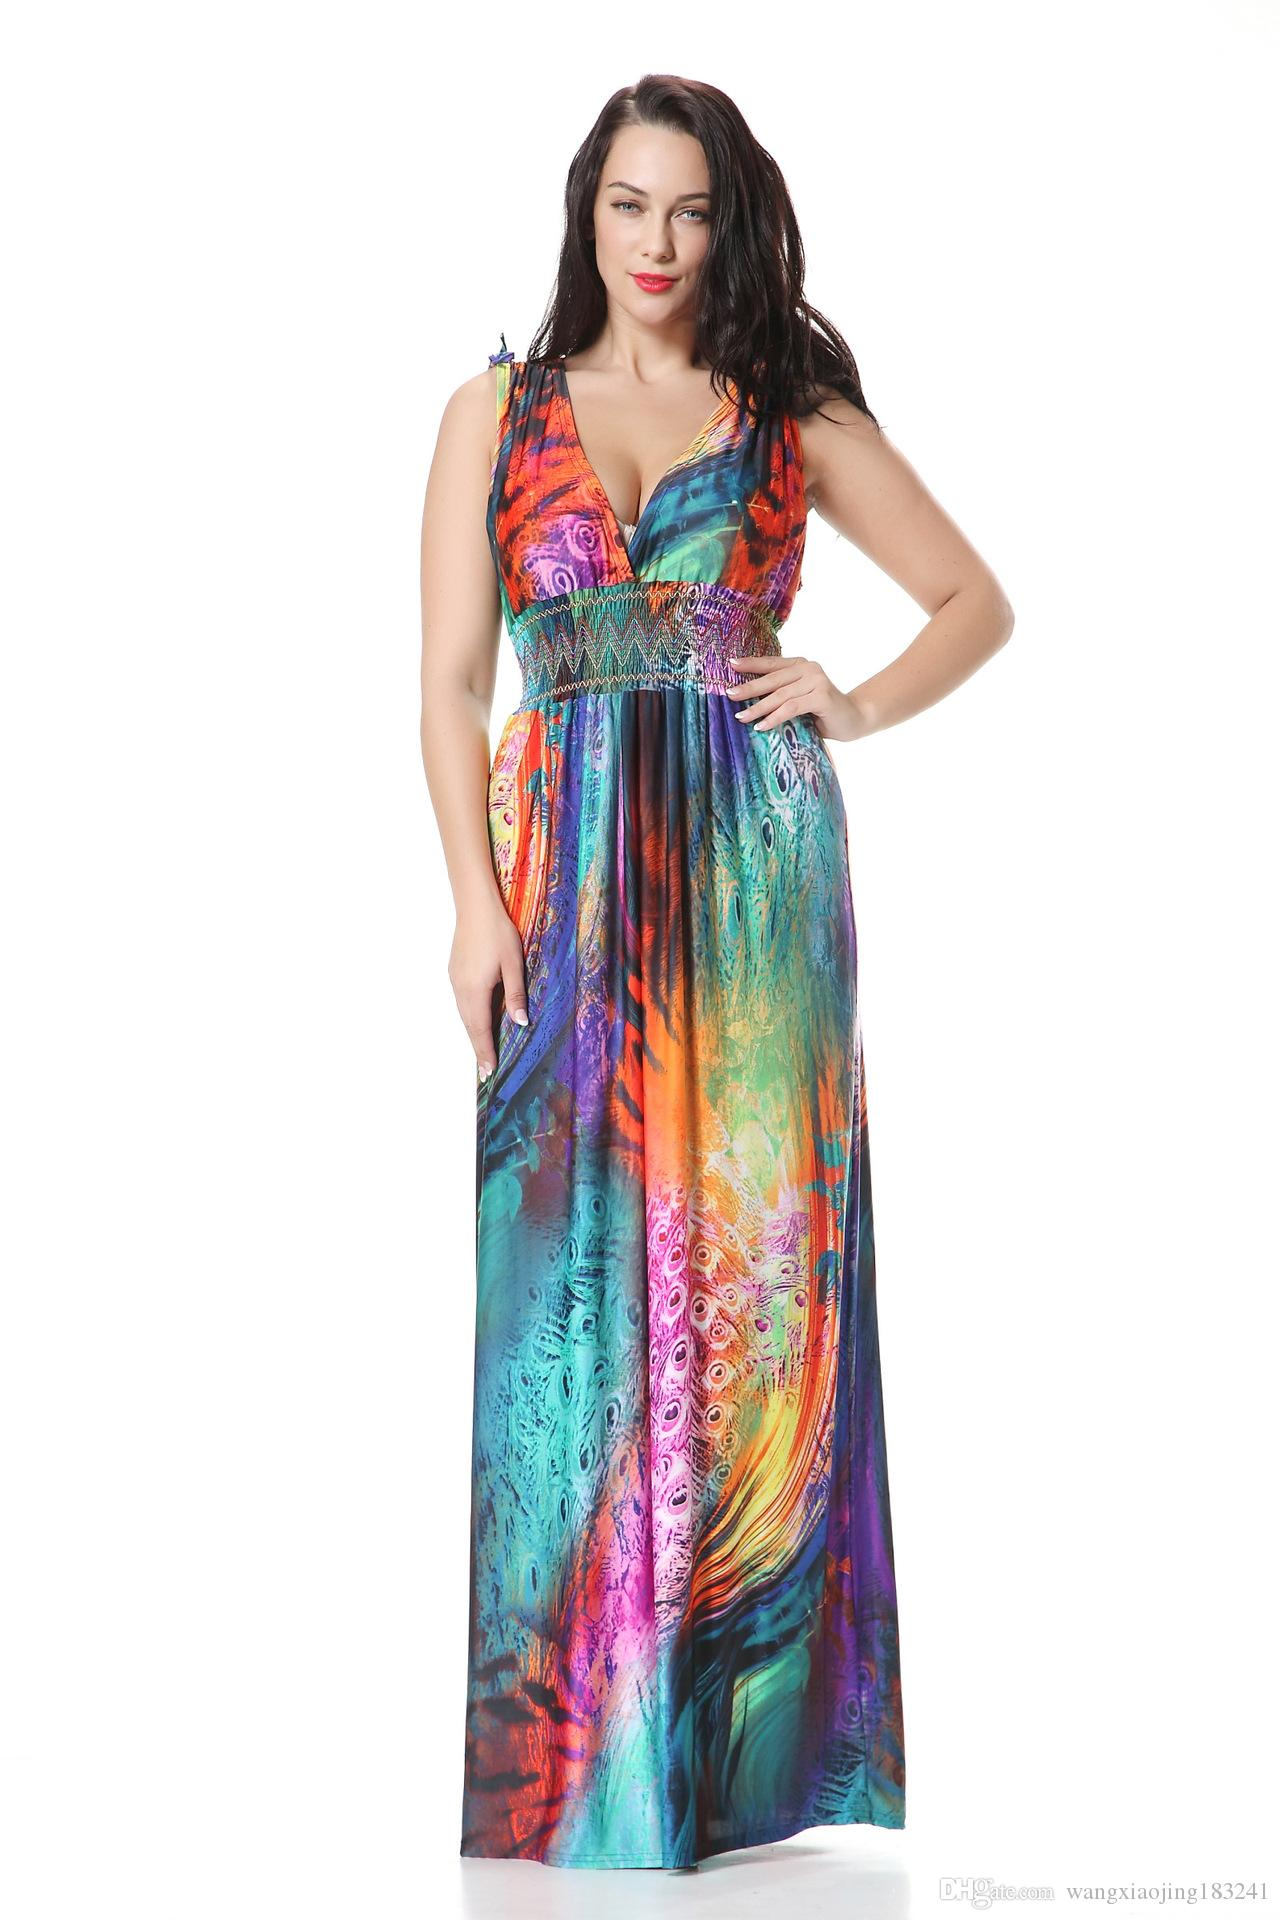 dae4c31943971a Womens Slim Fit Summer Beach Dresses Long Floral Maxi Dresses For Women  Sundress Sleeveless V Neck Casual Sexy Ladies Dress Plus Size 6XL Womens  Short ...